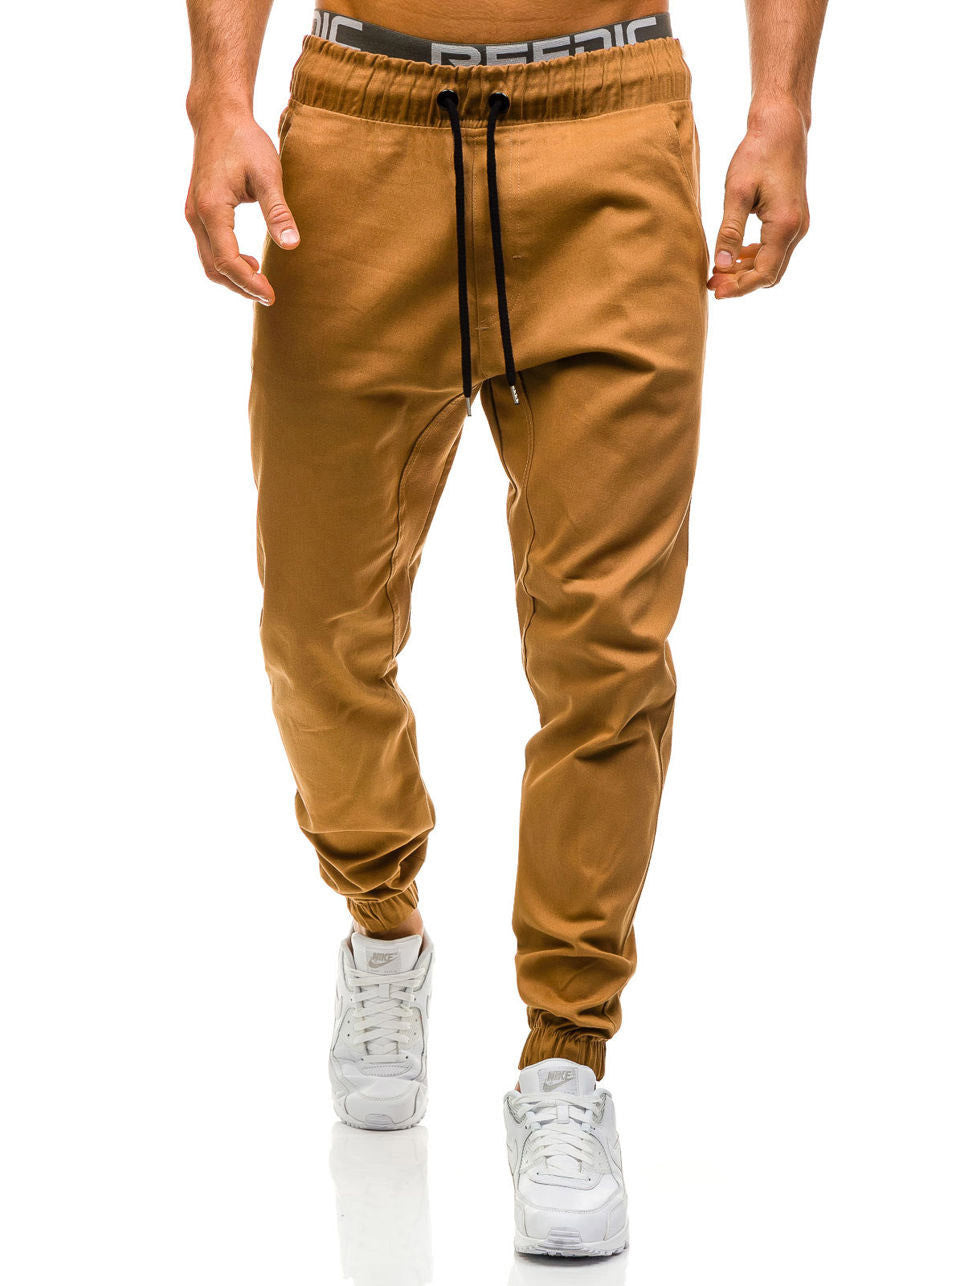 Men Joggers 2020 New Casual Pants Men Brand Clothing High Quality Spring Long Khaki Pants Elastic Male Trousers 3XL